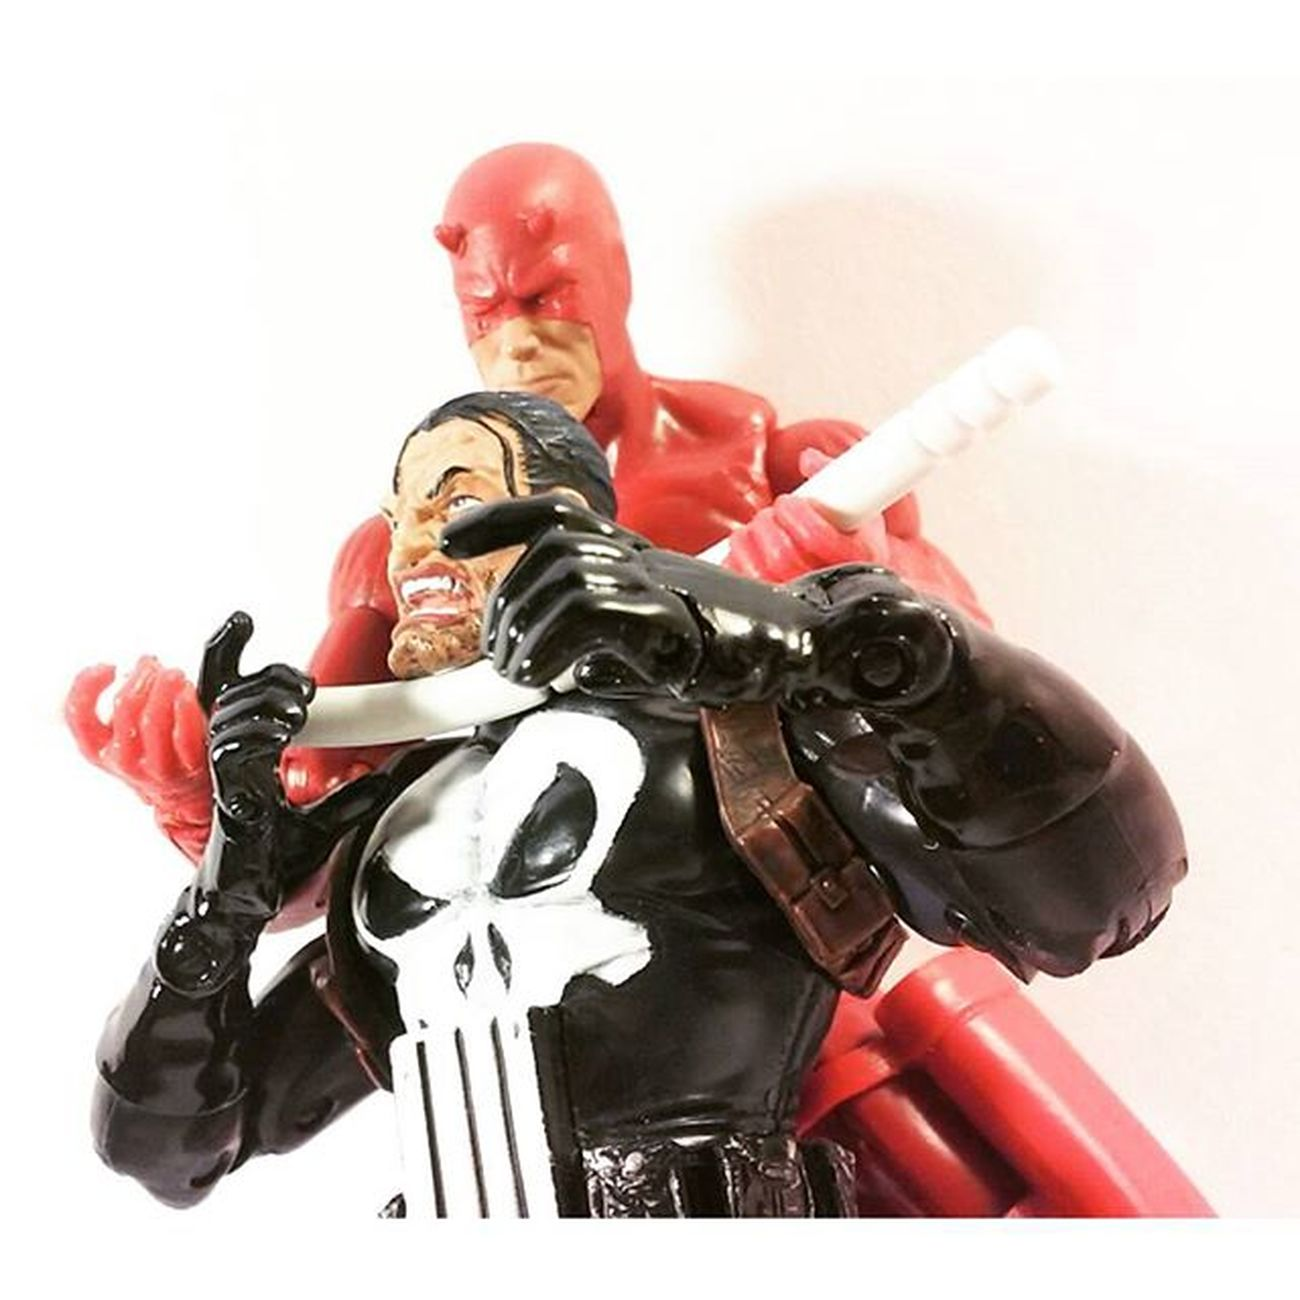 """I told you...no.more killing!!"" Marvellegends Marvellegendscollector Daredevil ThePunisher Mattmurdock Frankcastle Toyphotogallery Toyphotography Toyunion Toysartistry Toyartistry_elite Marvellegendscommunity Toyartistry_and_beyond Toynation Toycollection Toyography Toystagram Toyslagram Toysaremydrugs Toysarehellasick Toyunion Ata_dreadnoughts Toygroup_alliance Articulatedcomicbookart Actionfigureoutcast toyrevolution actionfigurephotography actiontoyart Figurecollector figurelife toys4life"